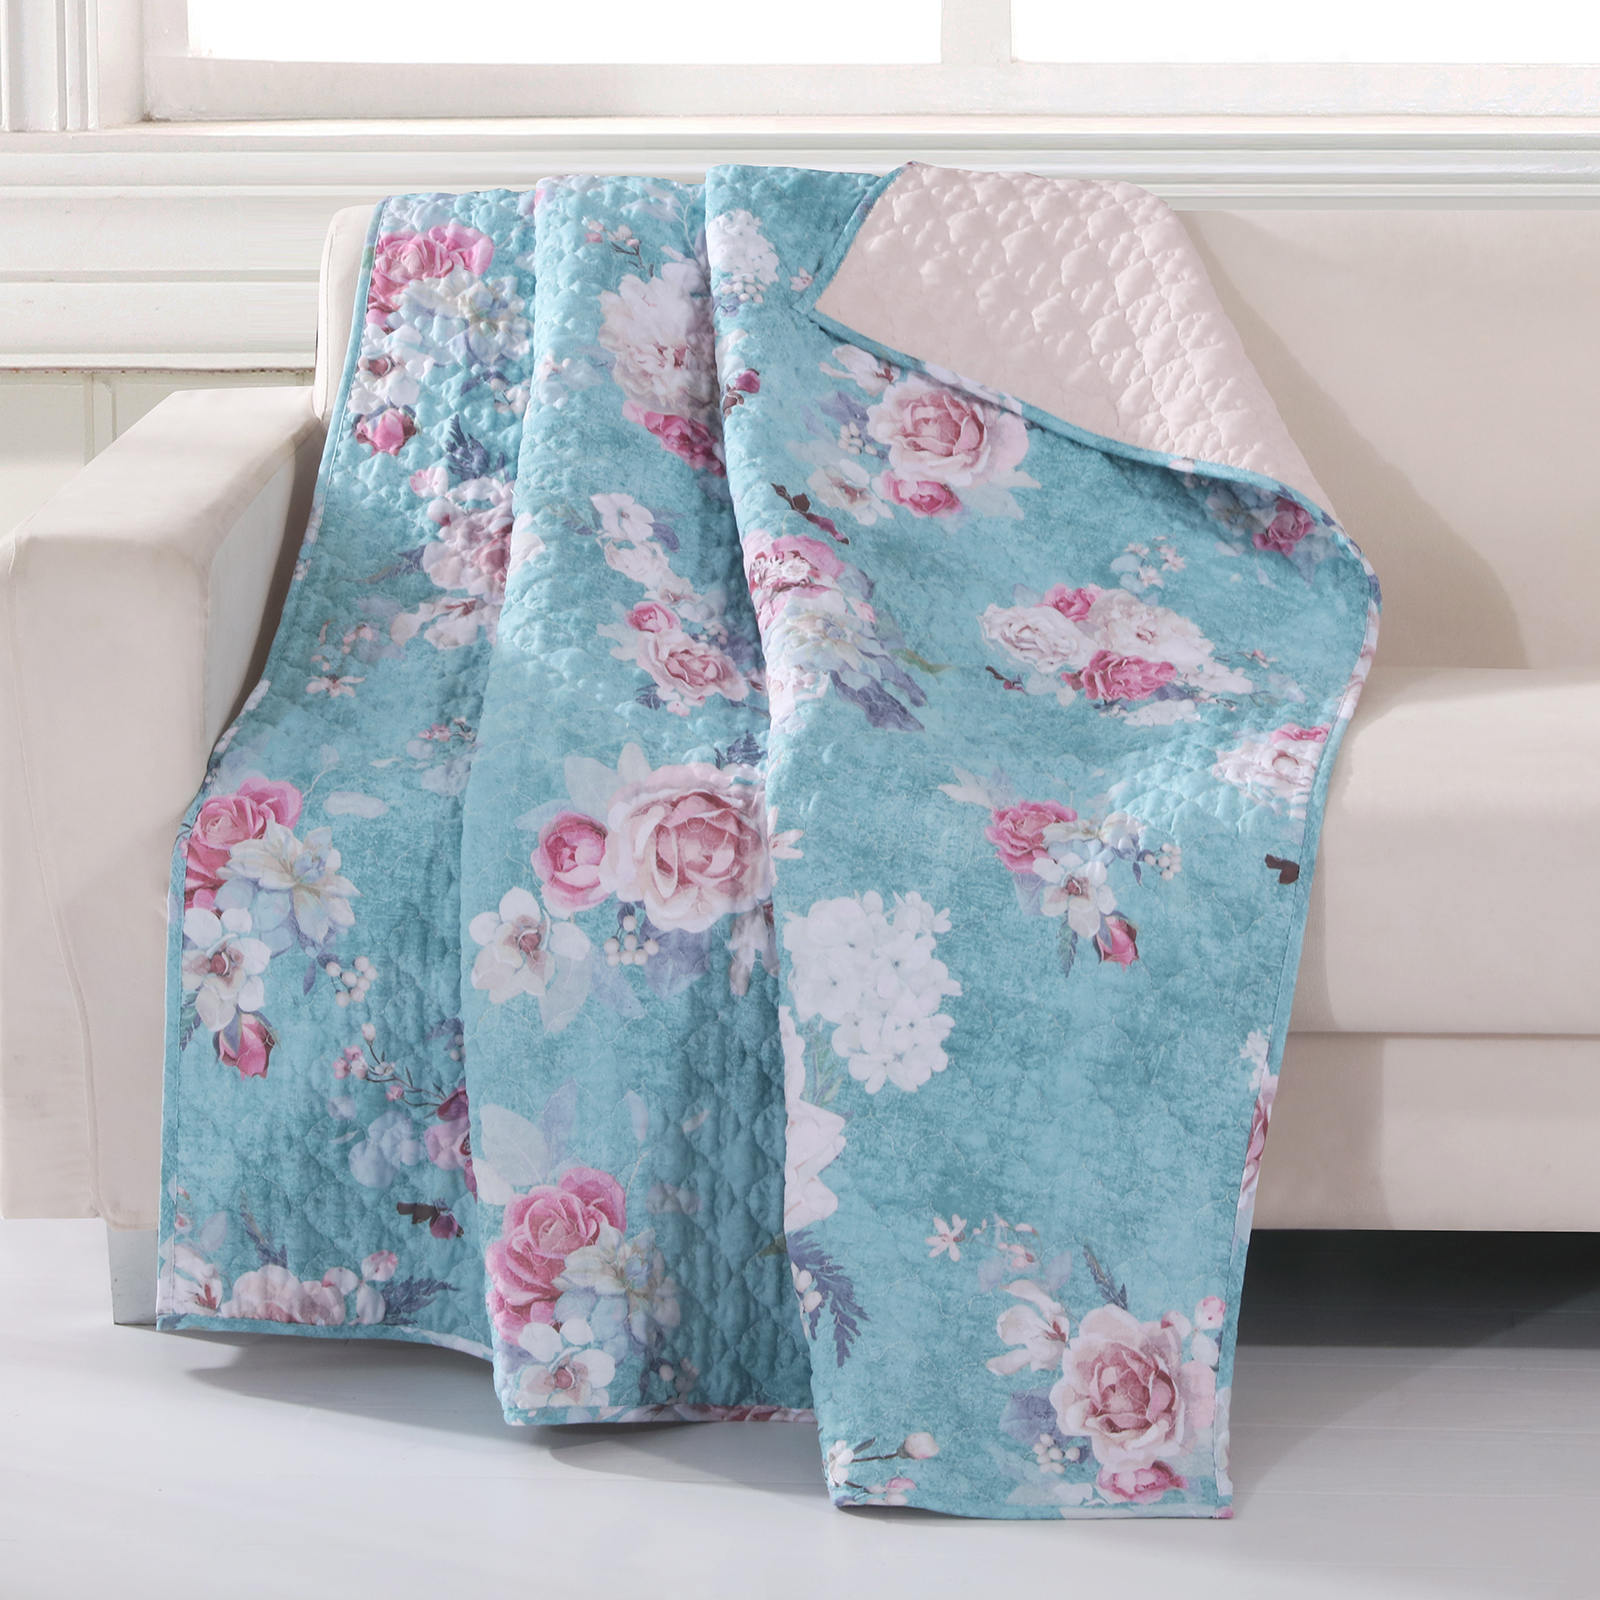 Avril Turquoise Blue Accessory Throw